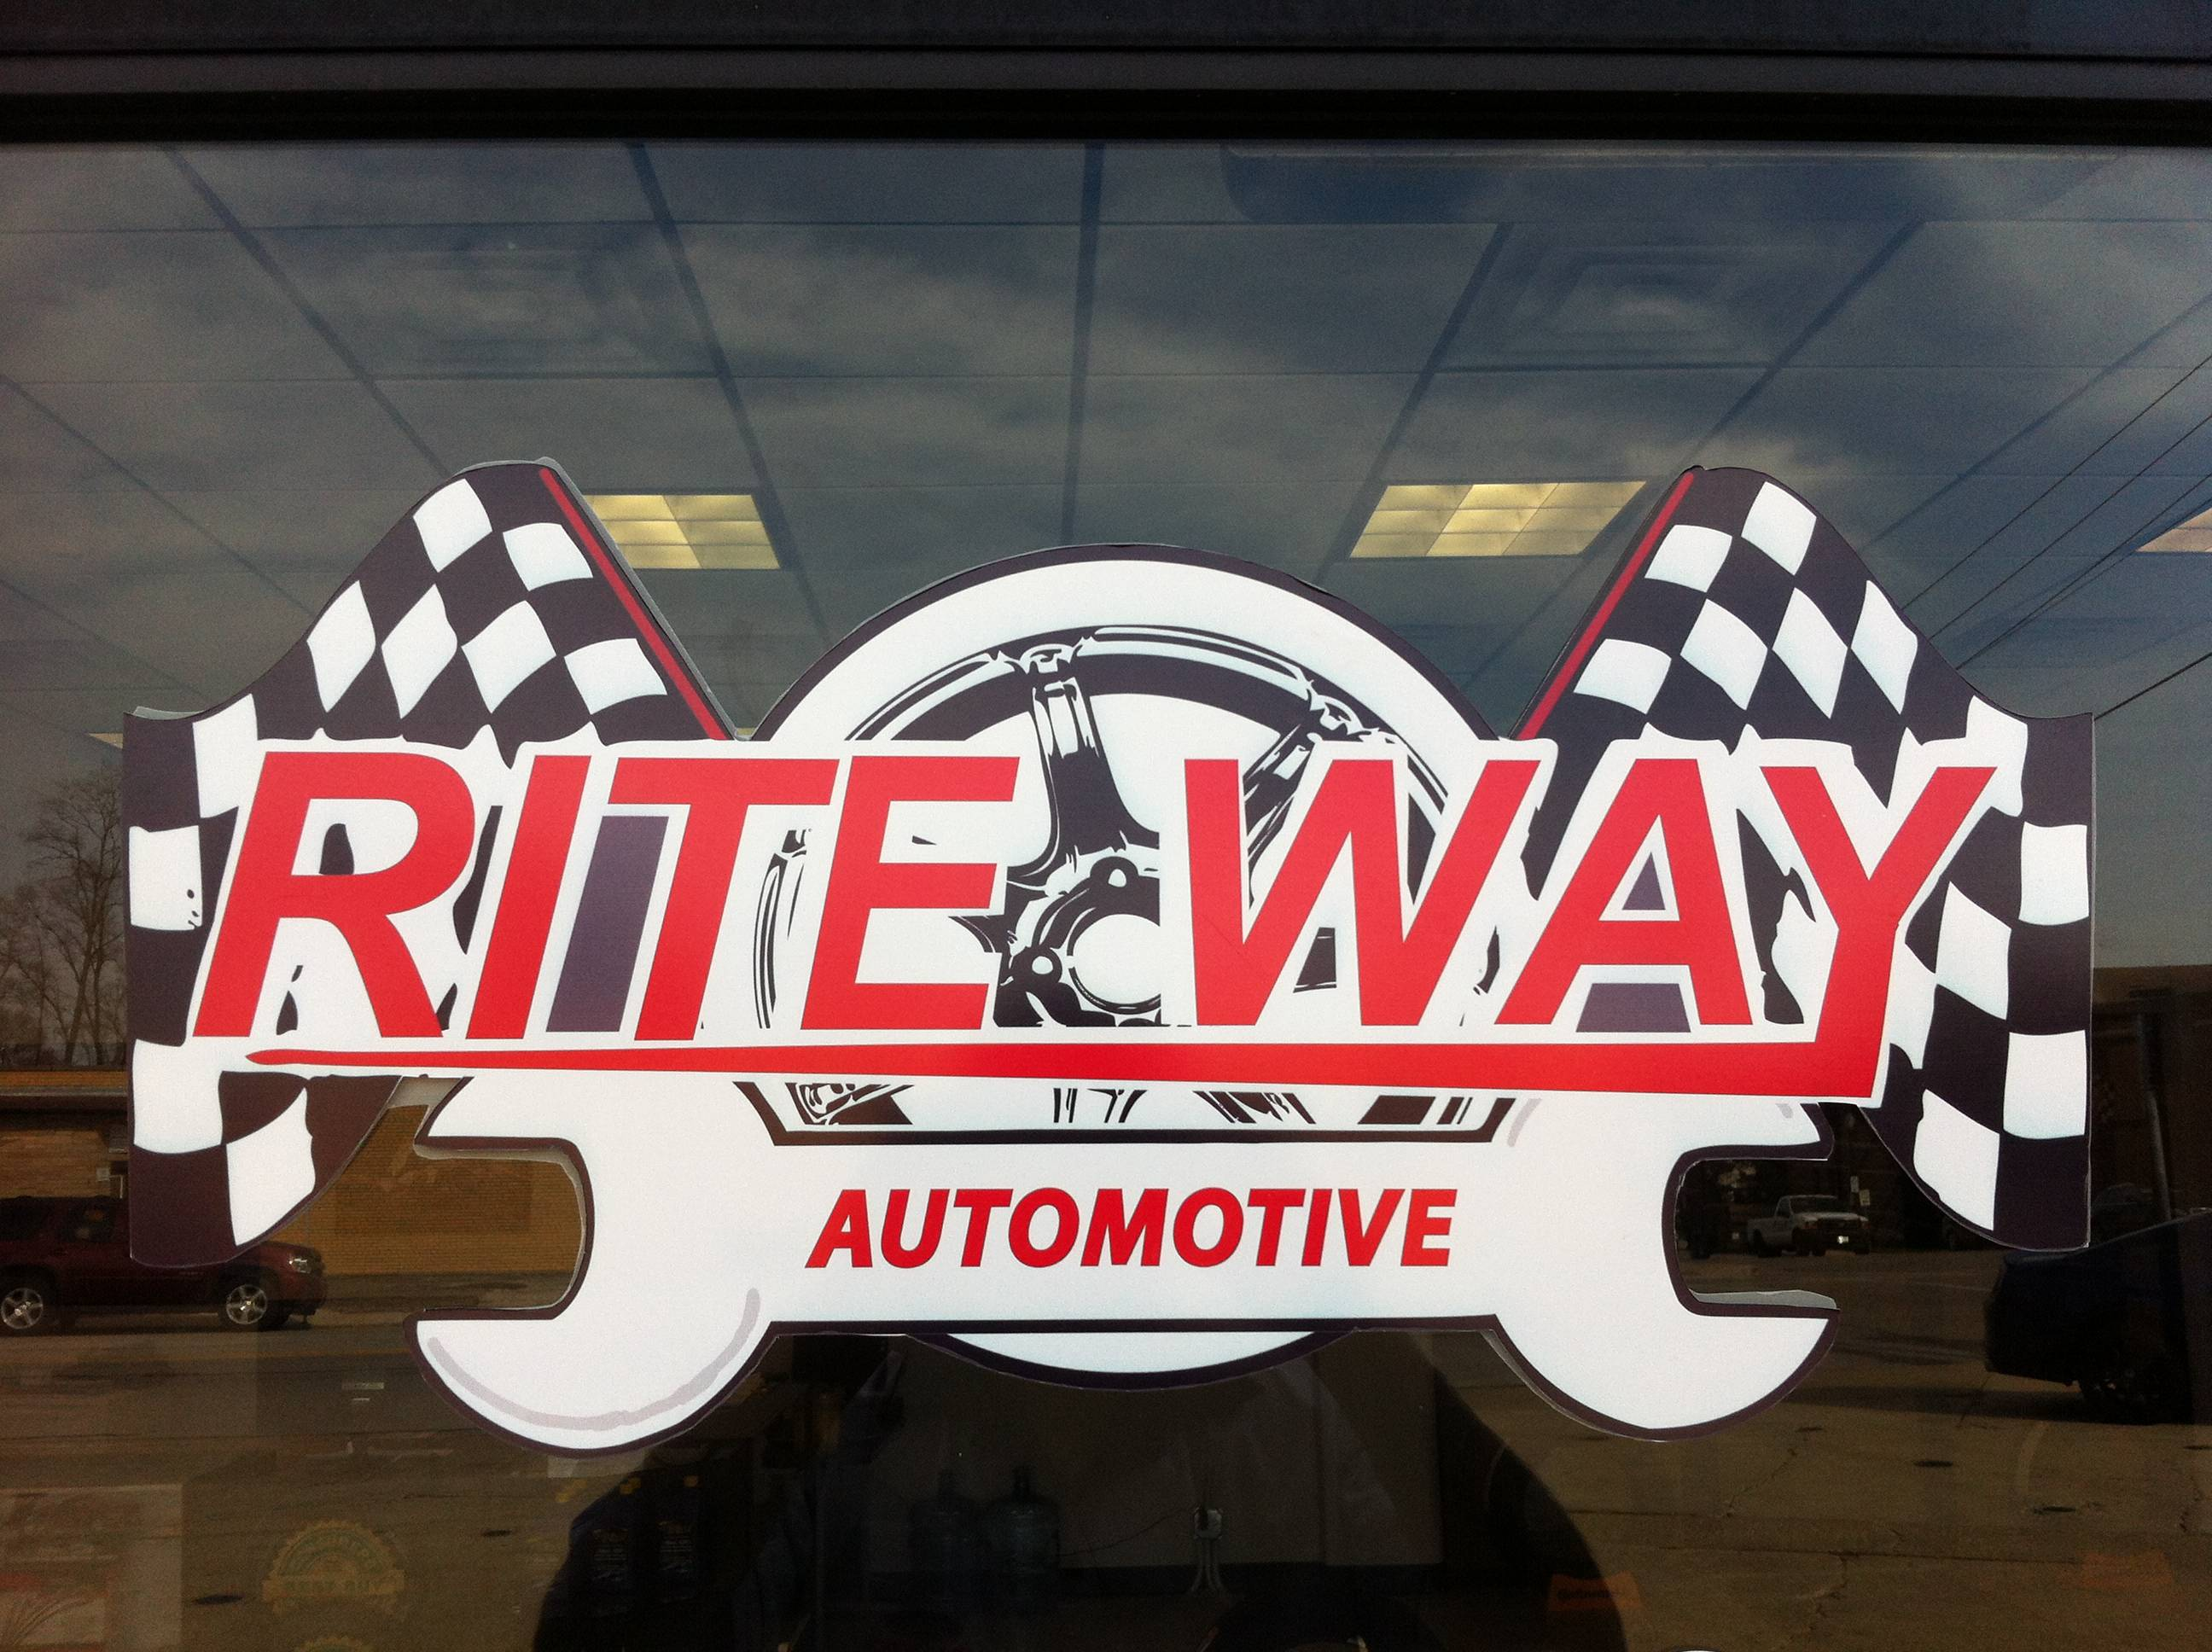 A façade improvement at Rite-Way Automotive in West Chicago triggered the memory of an artifact that was placed behind a commemorative marble stone when the building was originally constructed in 1951.